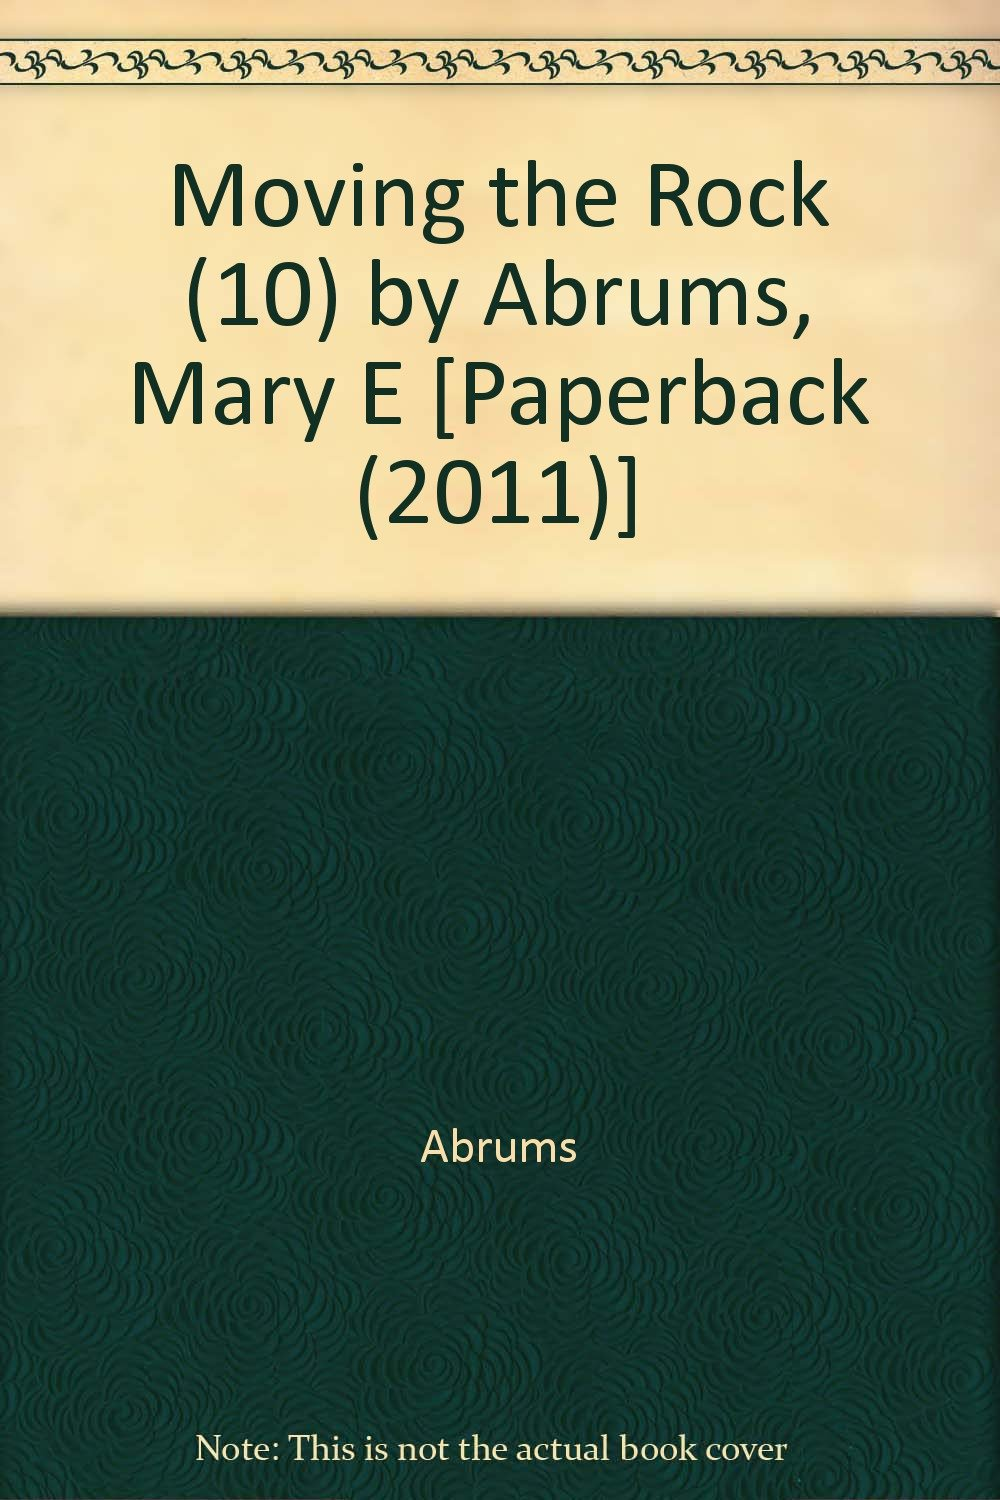 Download Moving the Rock (10) by Abrums, Mary E [Paperback (2011)] ebook